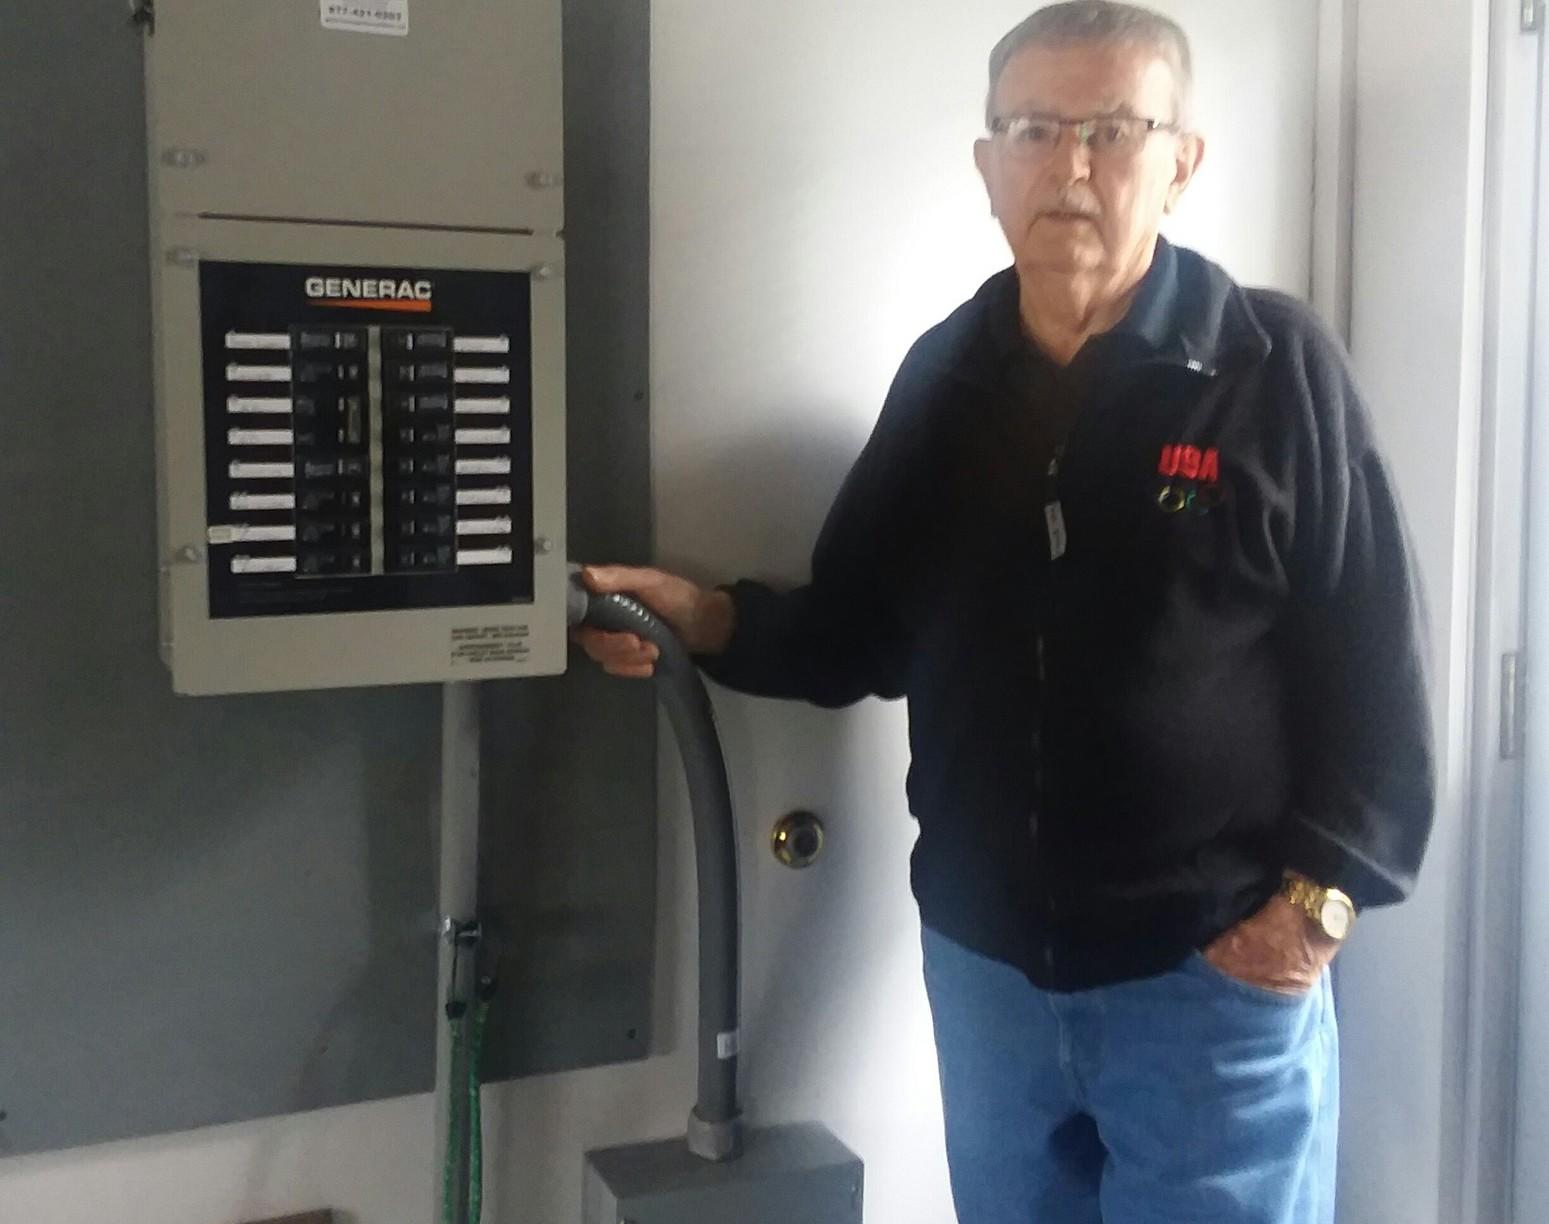 This satisfied customer proudly poses with his transfer switch